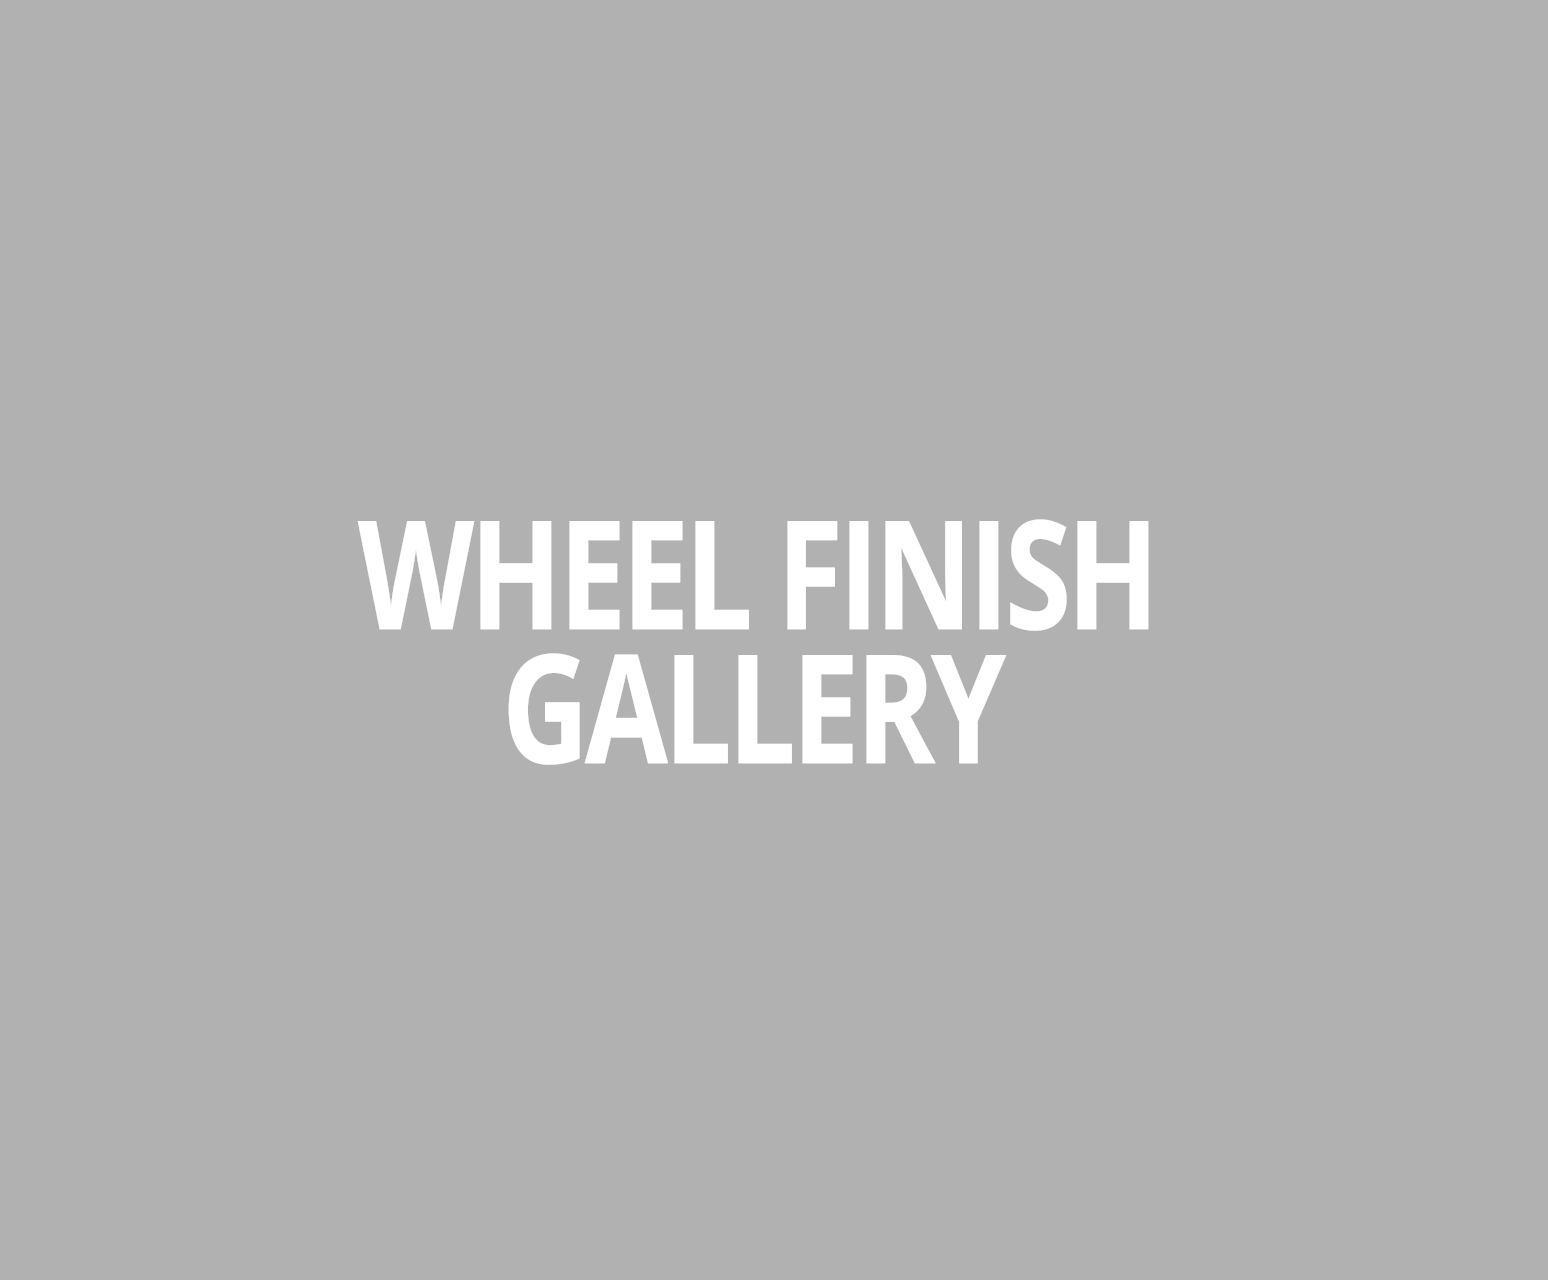 WHEEL-FINISH-GALLERY